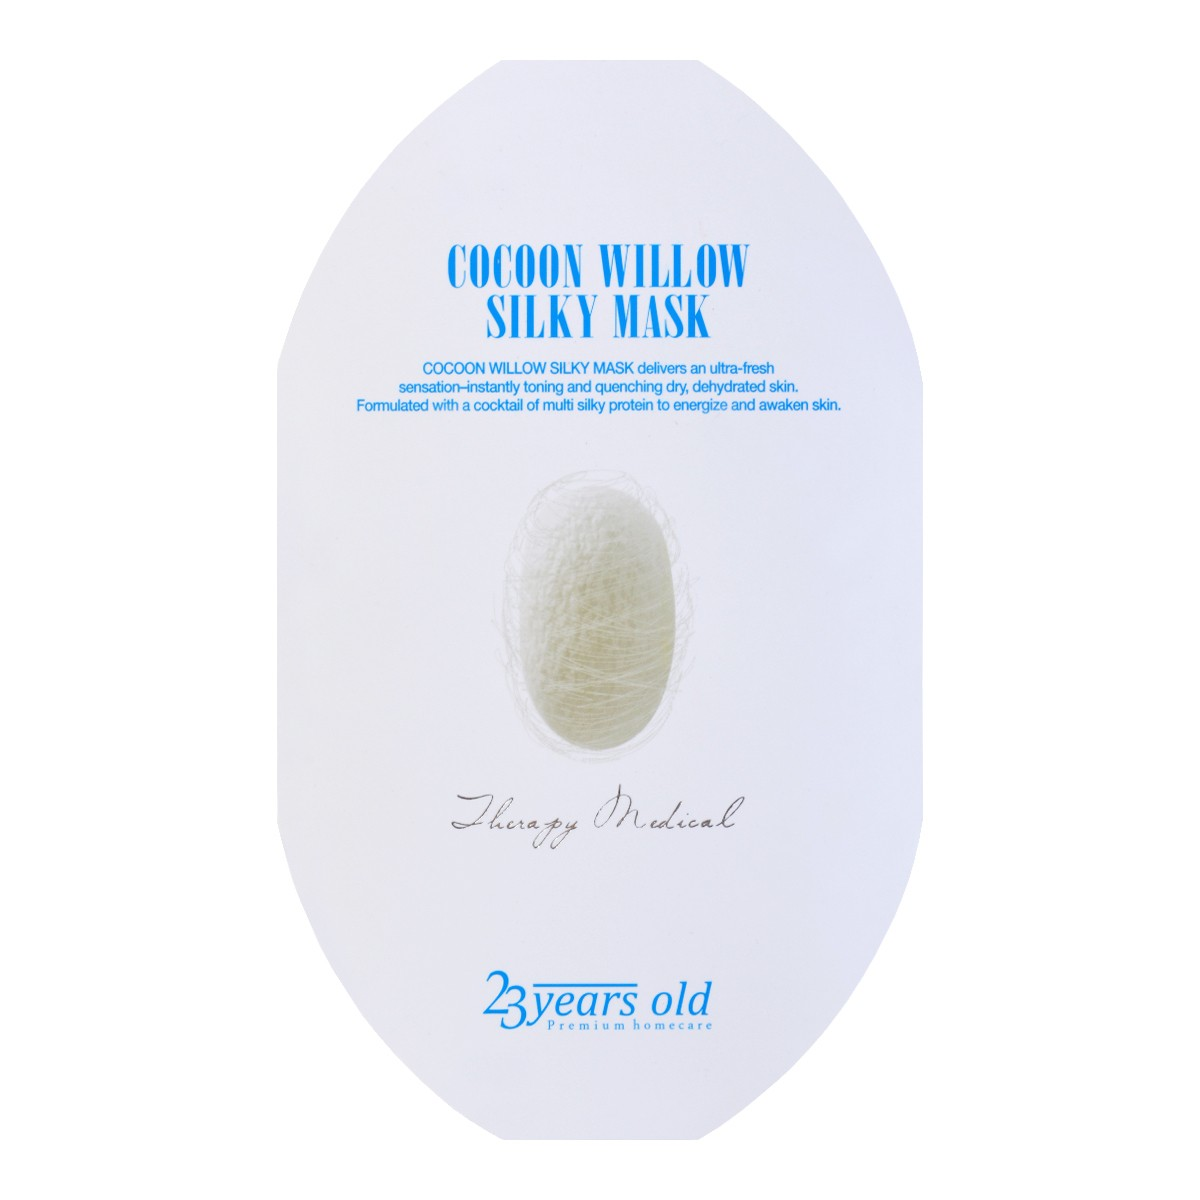 Yamibuy.com:Customer reviews:23 YEARS OLD Cocoon Willow Silky Mask 1sheet